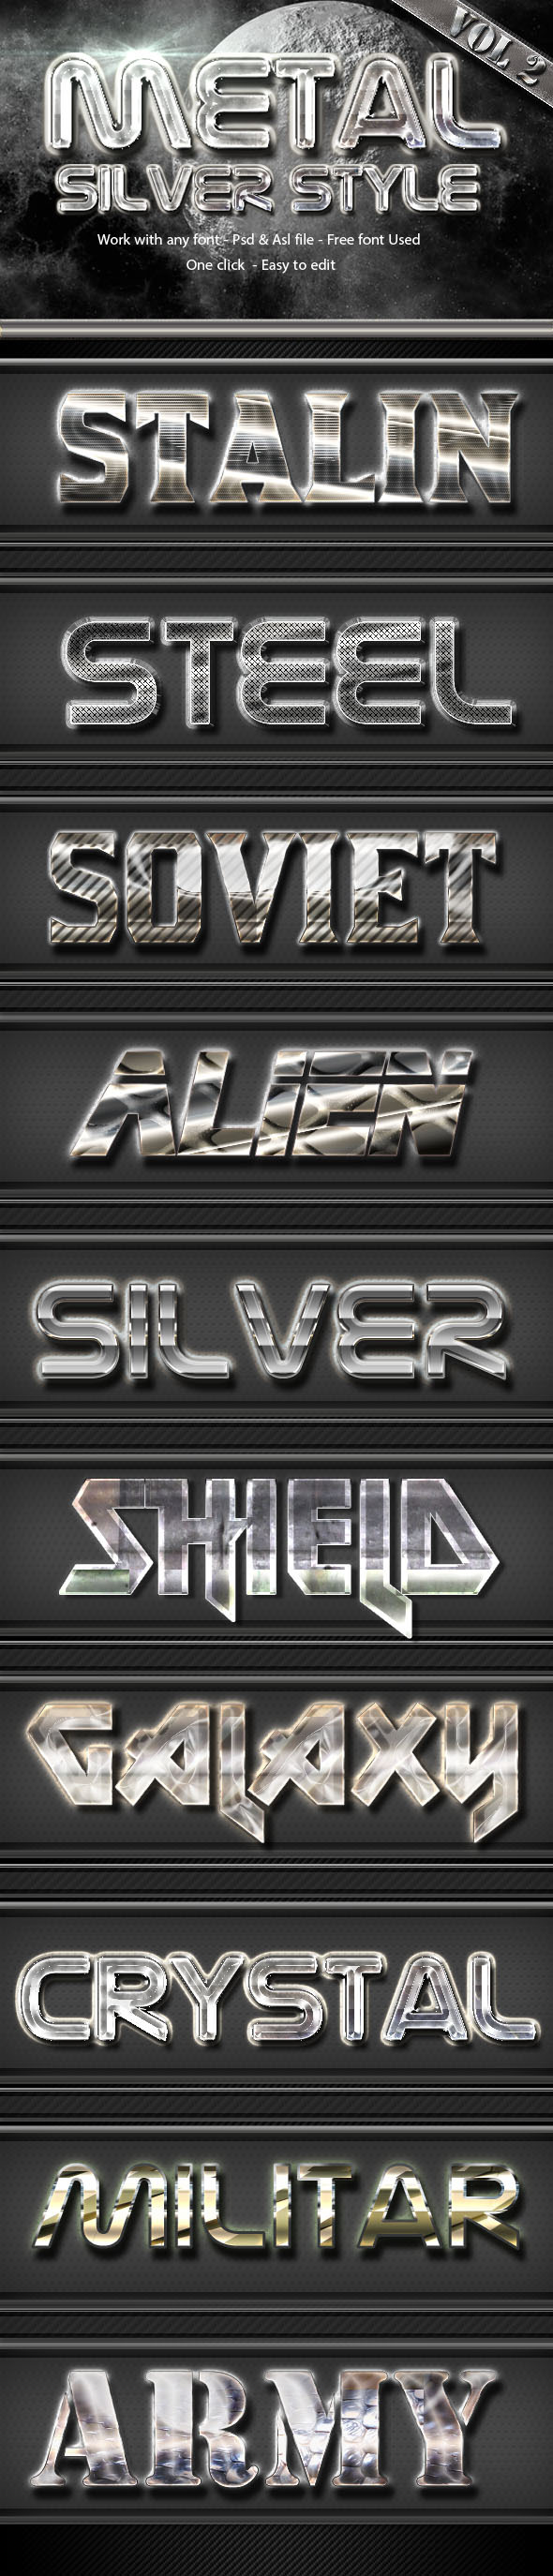 Metal Silver Text Effect Style  Vol 2 - Text Effects Styles